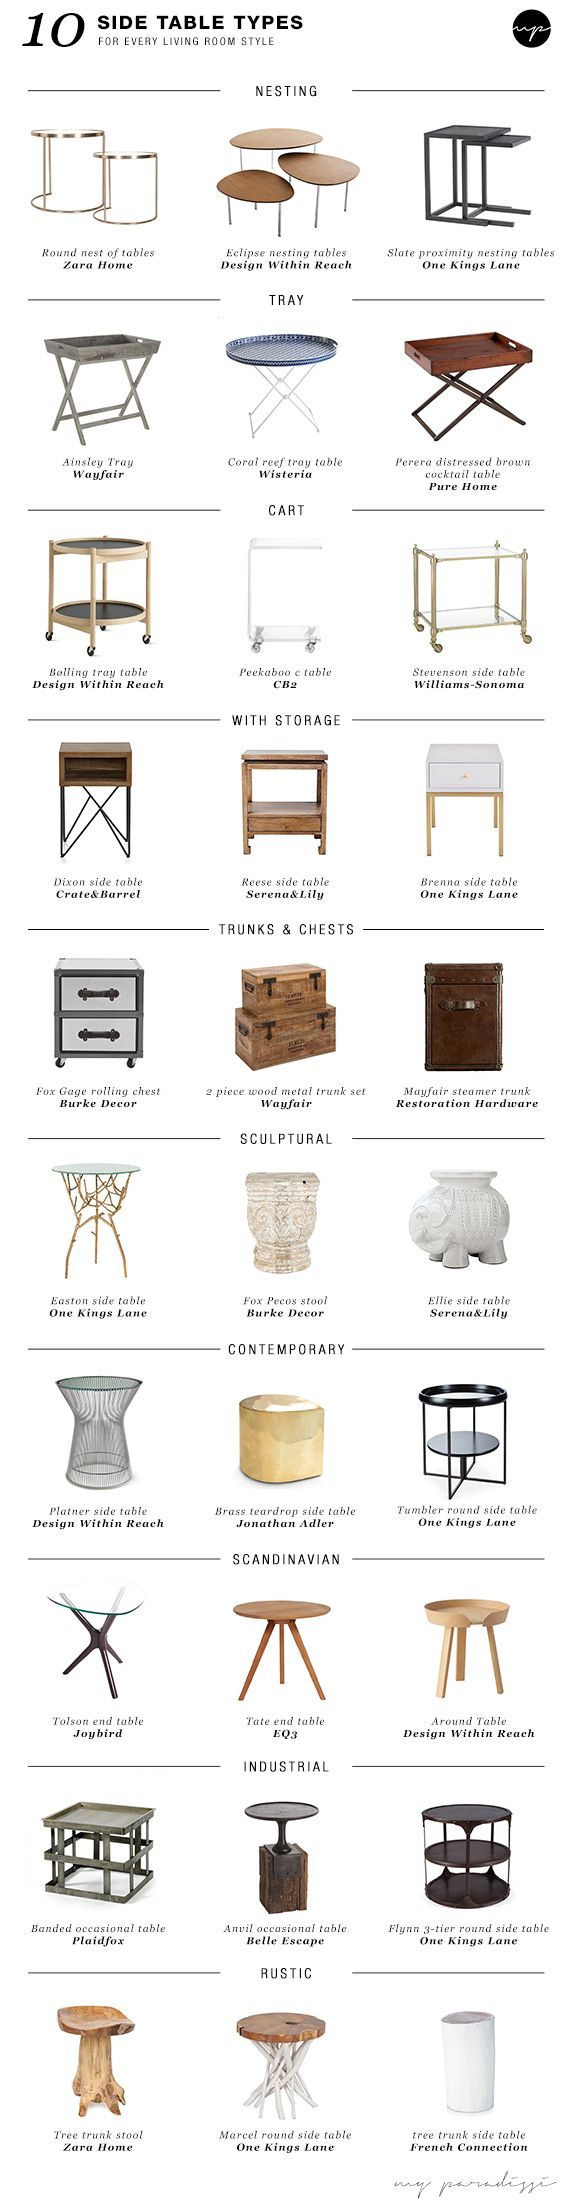 10 Side Table Types For Every Living Room Style Furniture Design Modern Living Room Style Interior Design Furniture